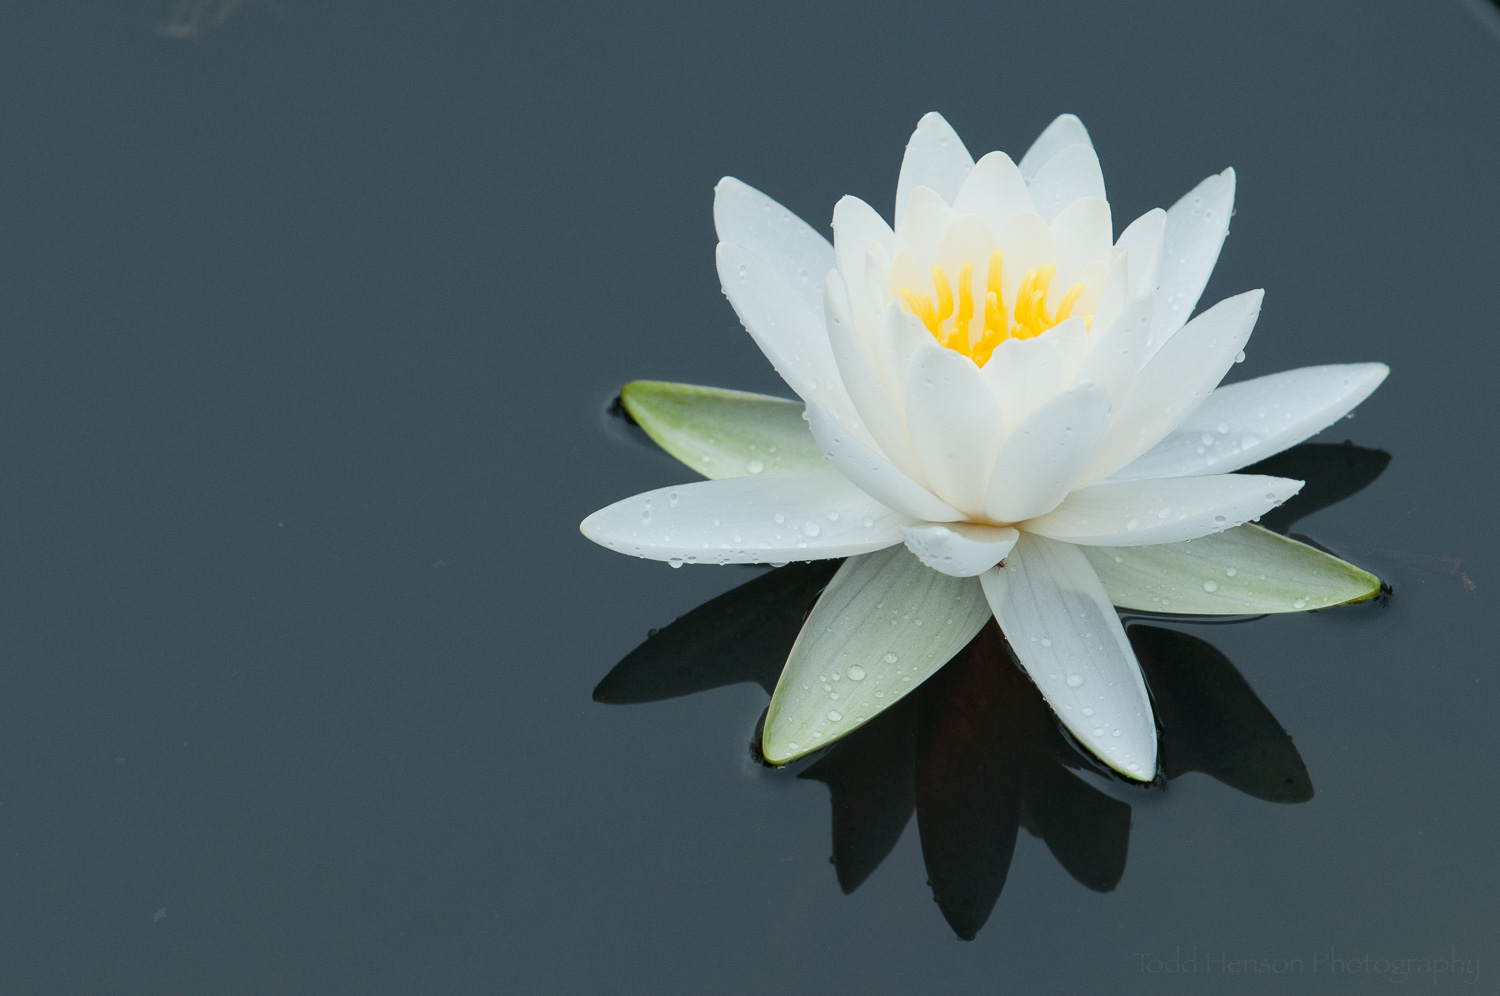 White Water Lily. This is the composition I was looking for.